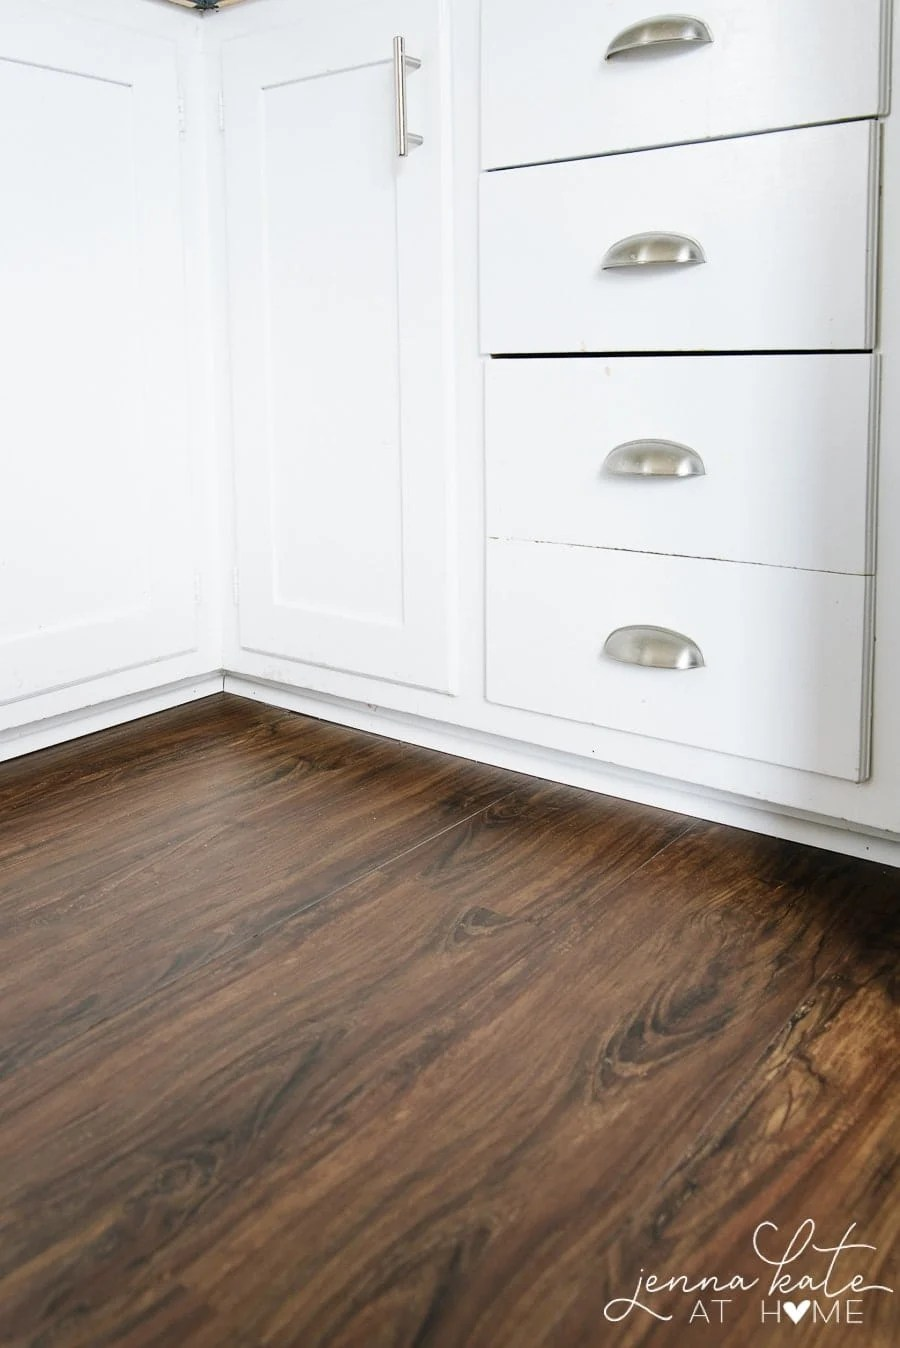 The edges of the luxury vinyl plank up against kitchen cabinets and secured with shoe molding